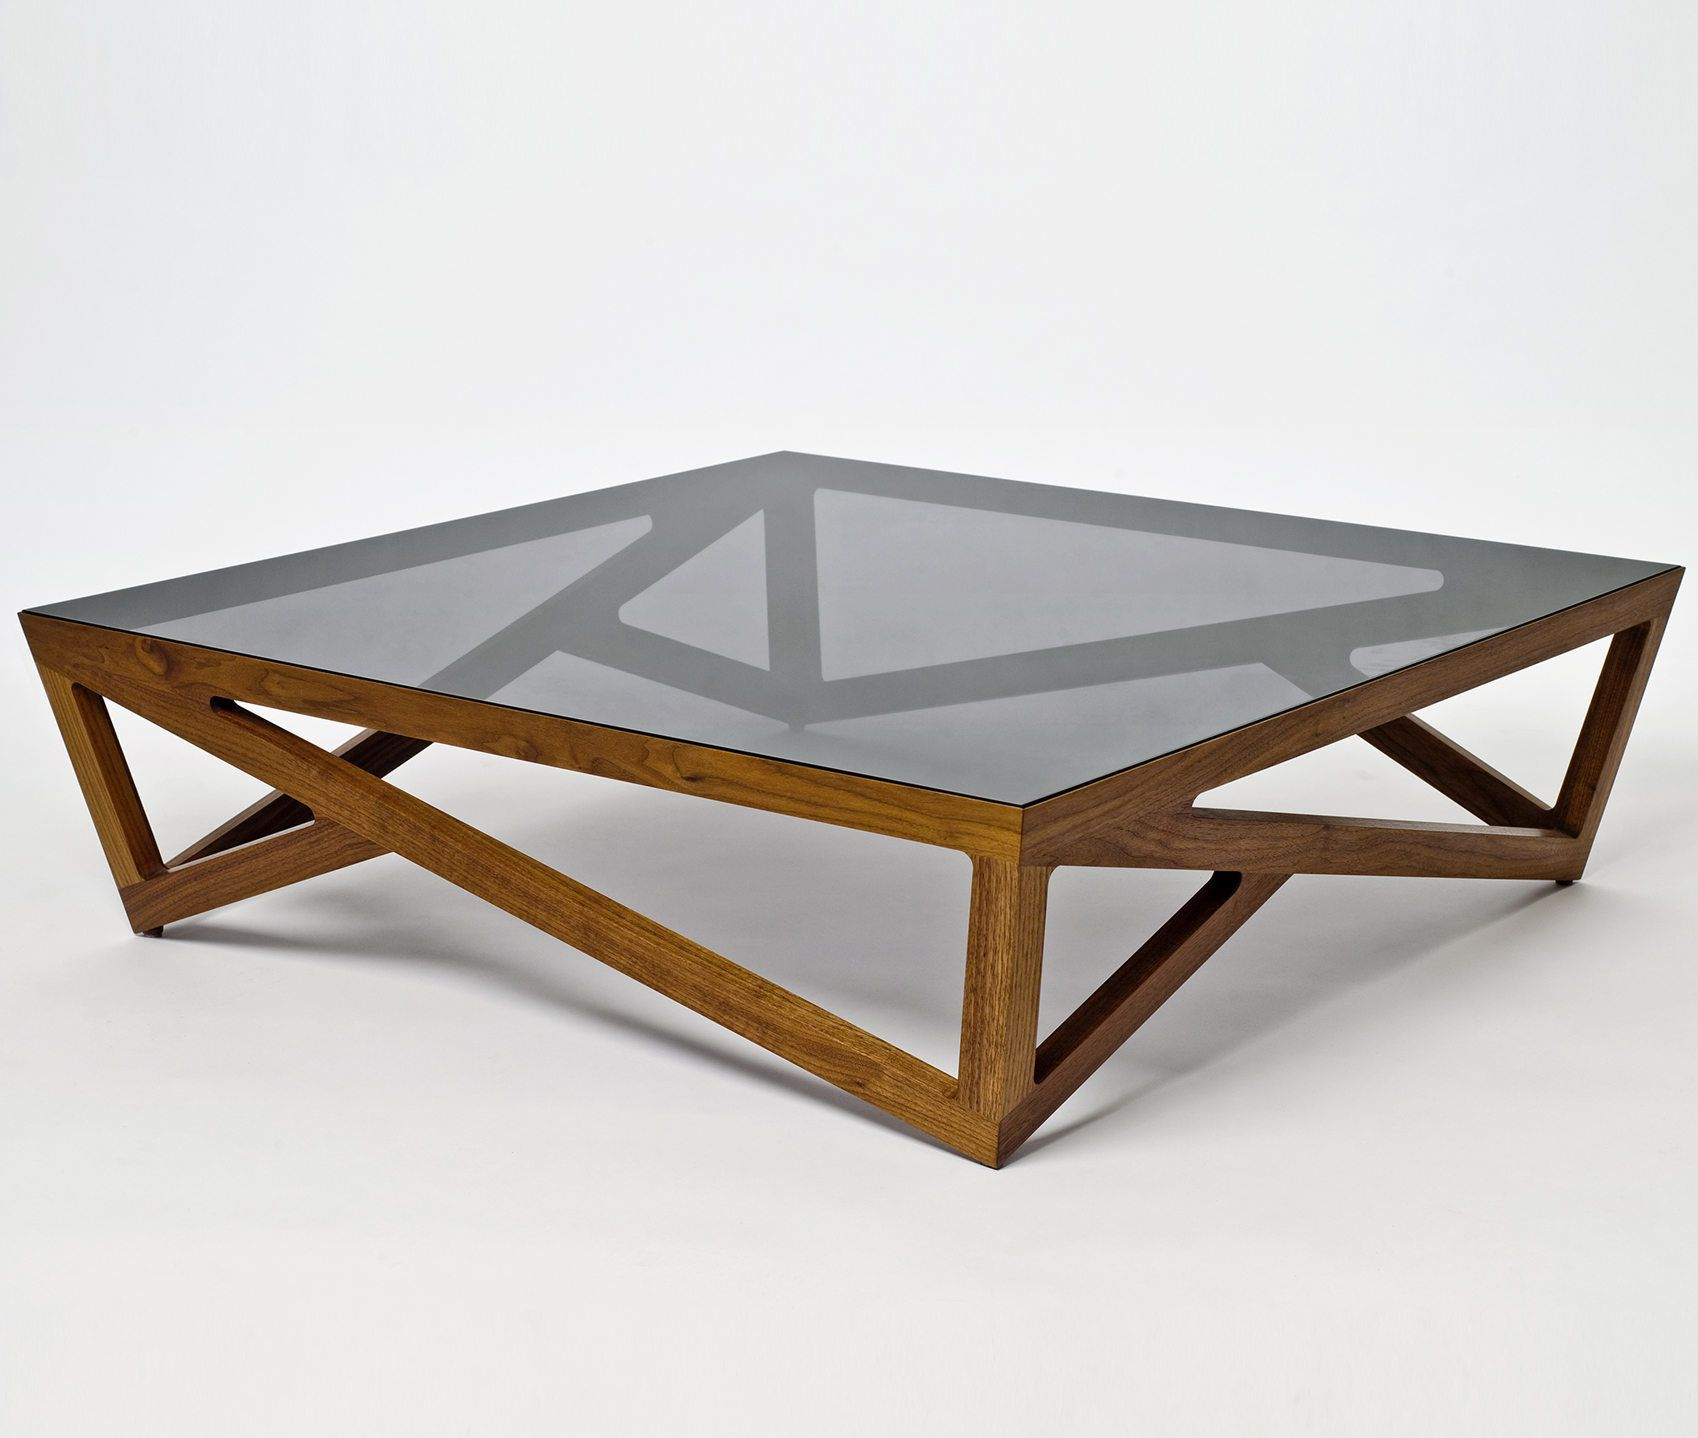 Perfect A Glass Topped Coffee Table With A Hardwood Lattice Base Inspired By The  Elegant Iron Structure Of The Parisian Landmark. Available In Solid Walnut  And ...